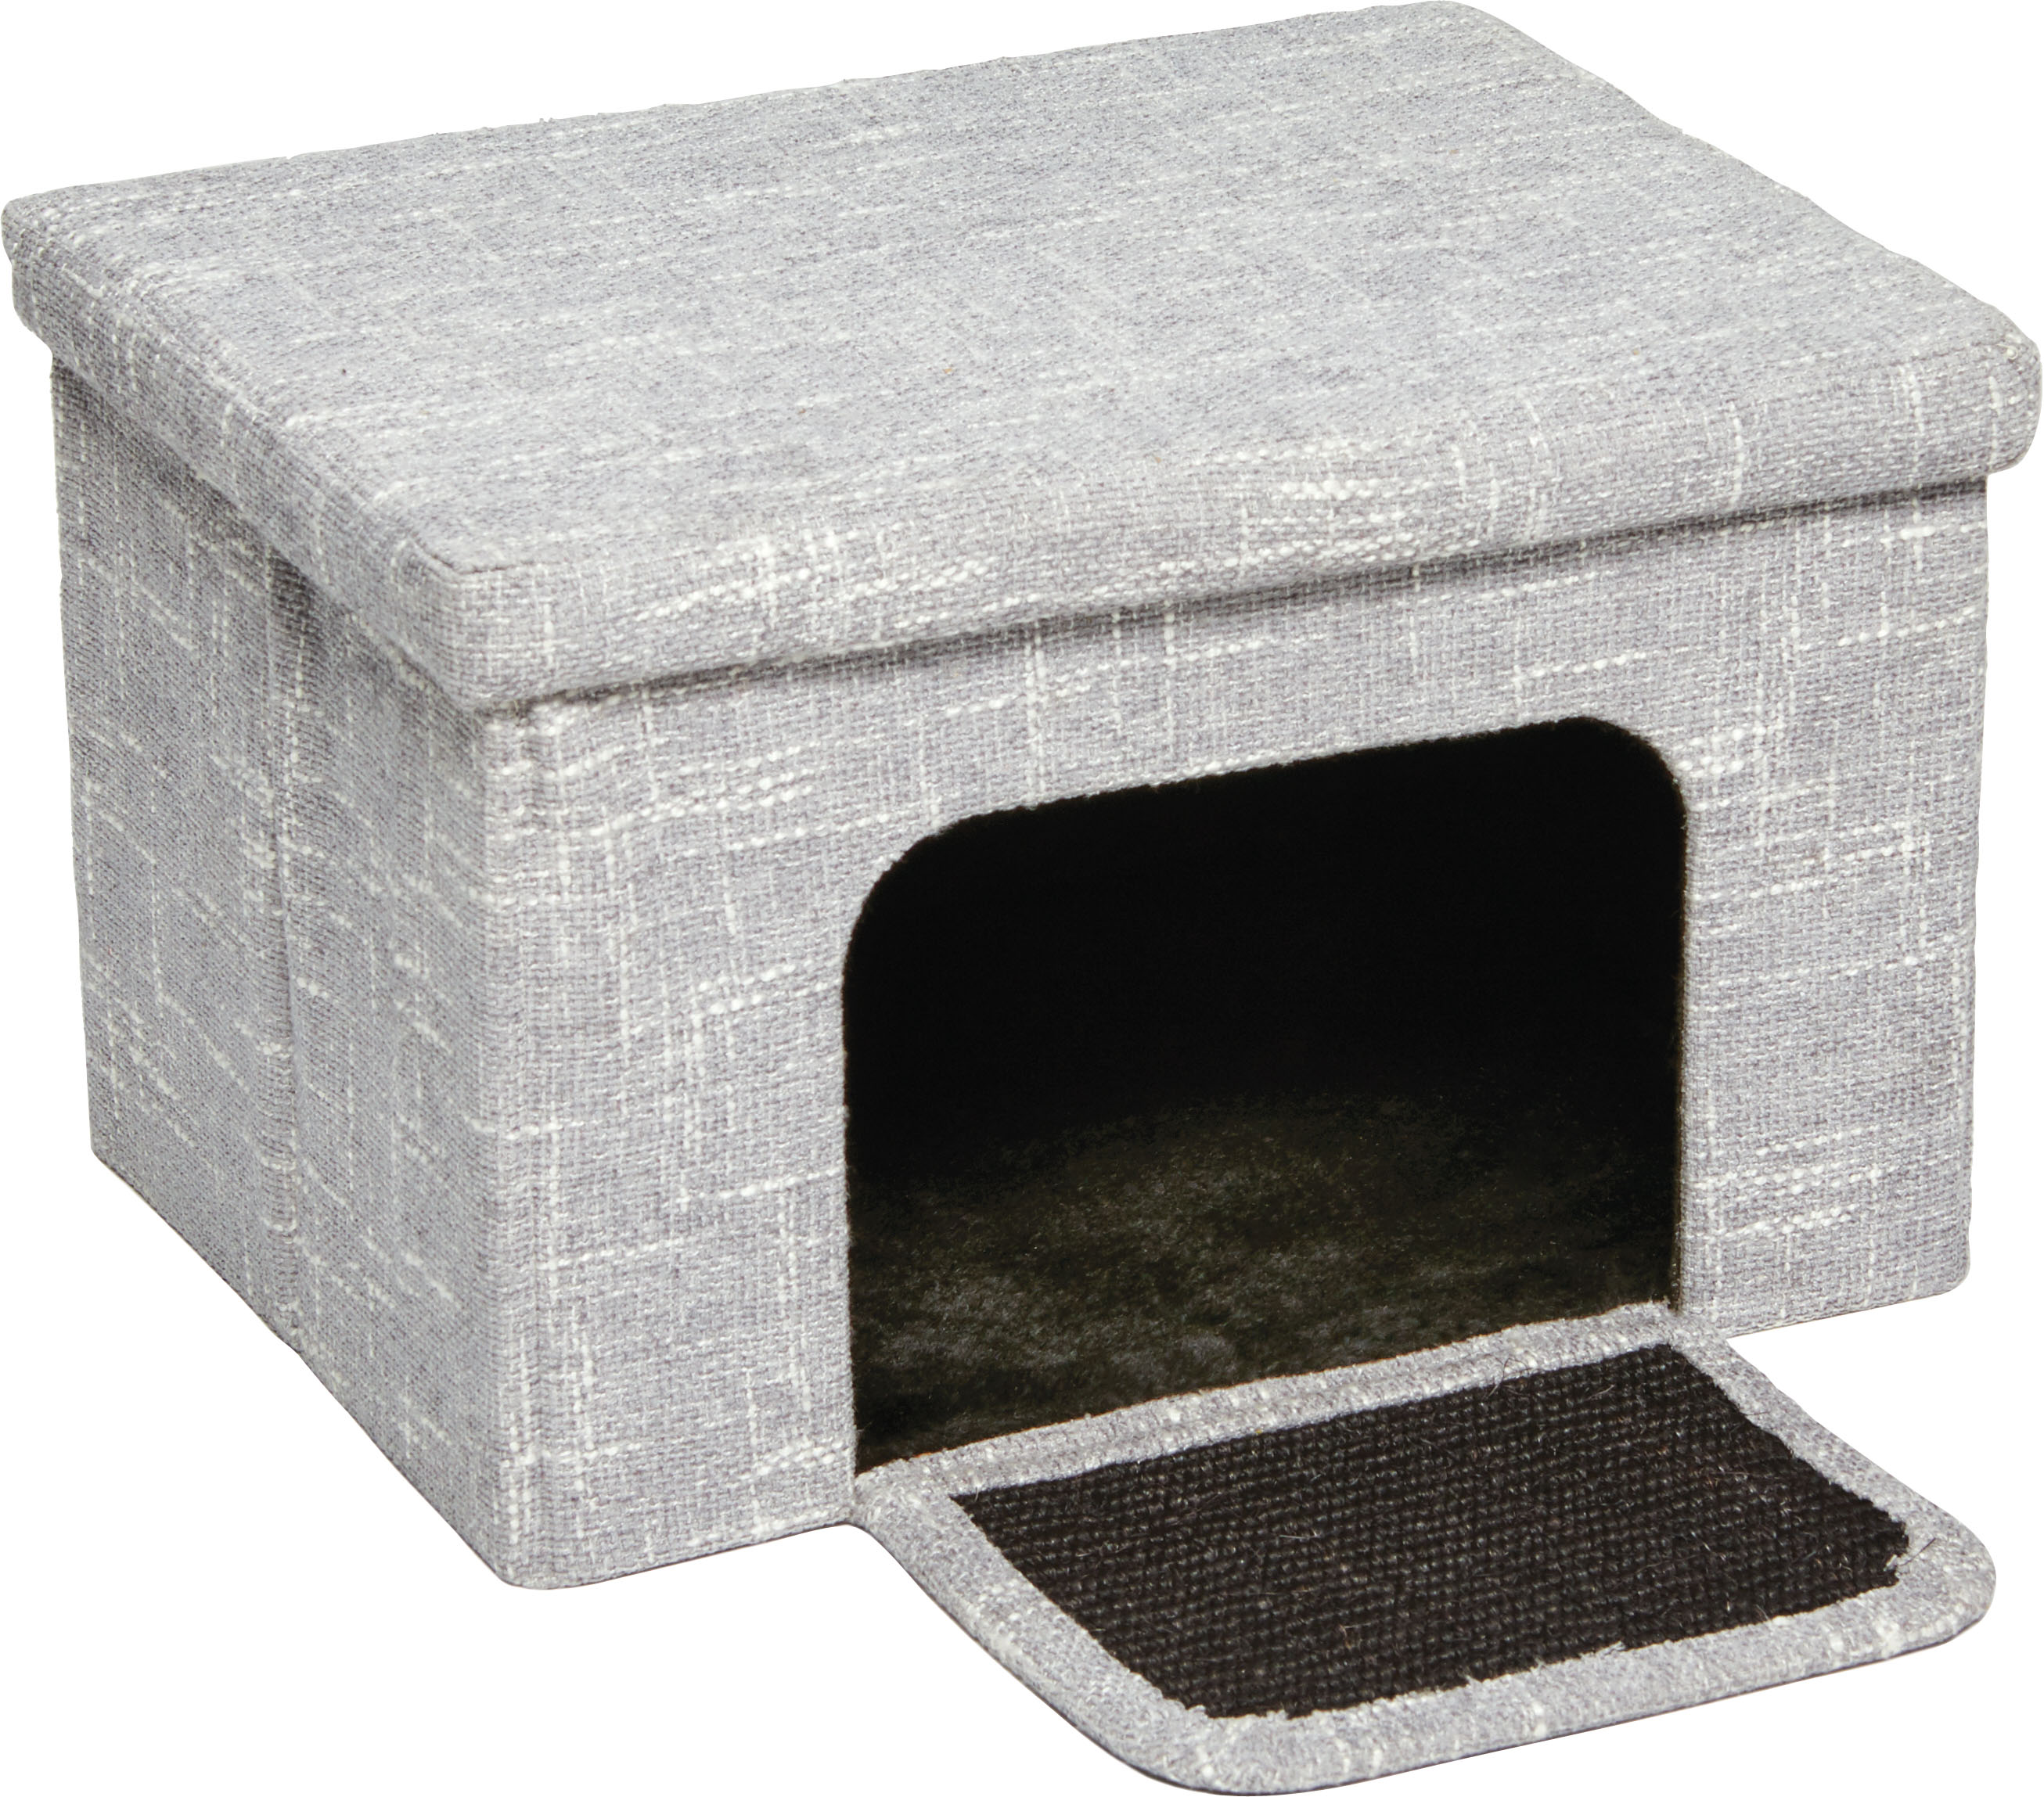 Midwest Curious Cube Cottage for Cats